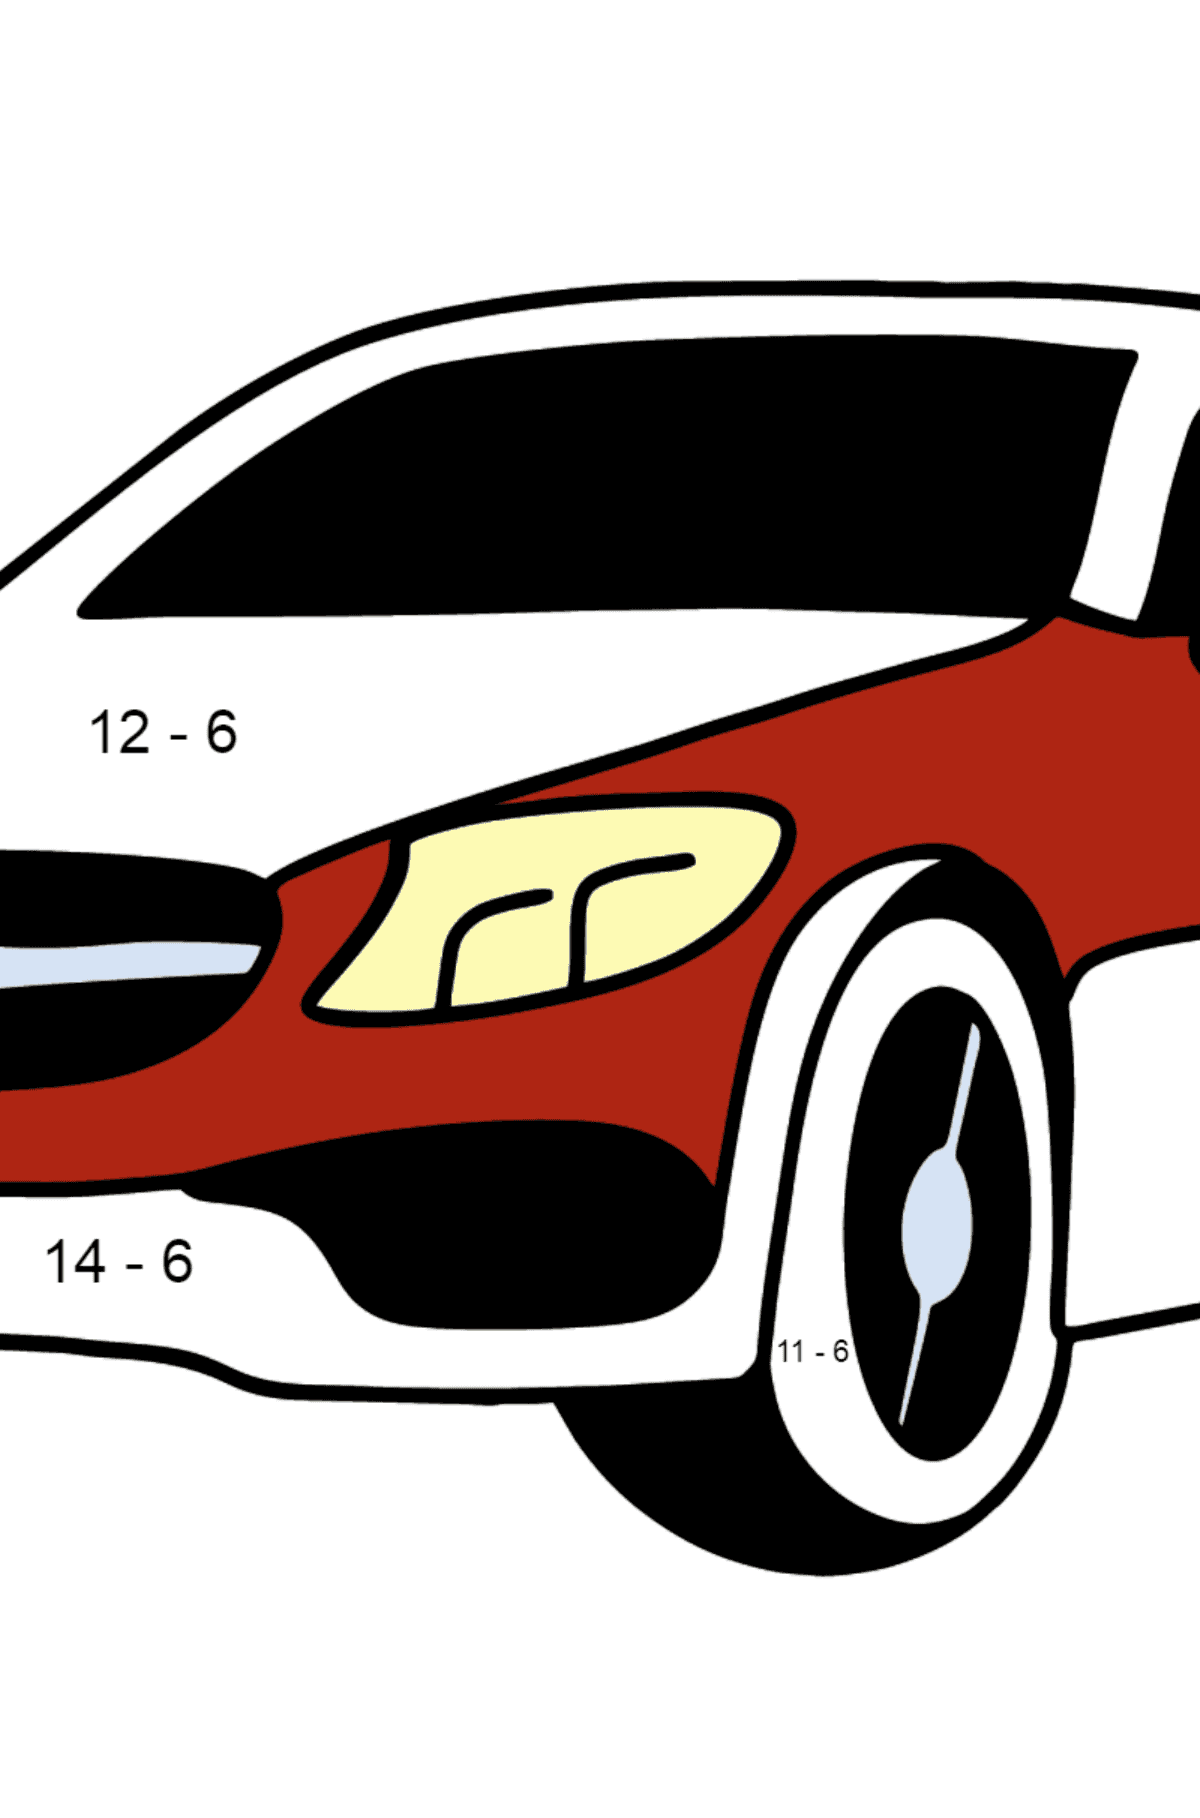 Mercedes C63 AMG car coloring page - Math Coloring - Subtraction for Kids